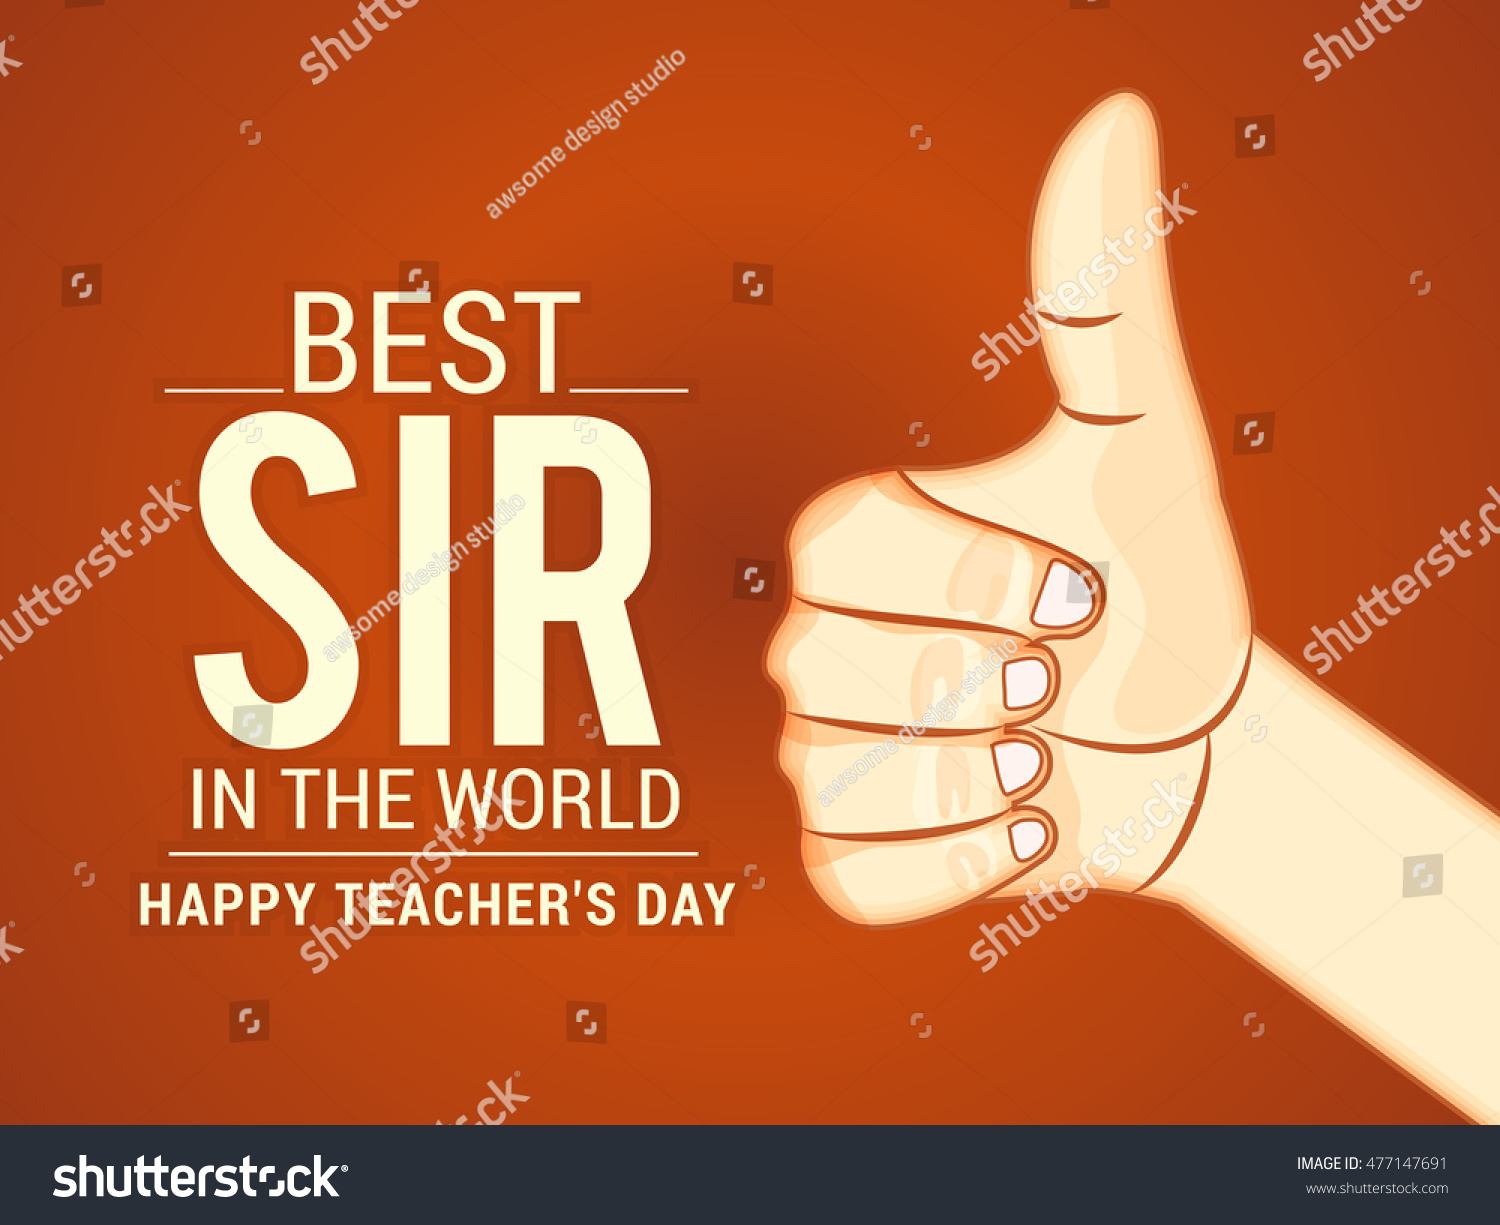 Creative greeting card teachers day celebration stock vector creative greeting card of teachers day celebration kristyandbryce Images